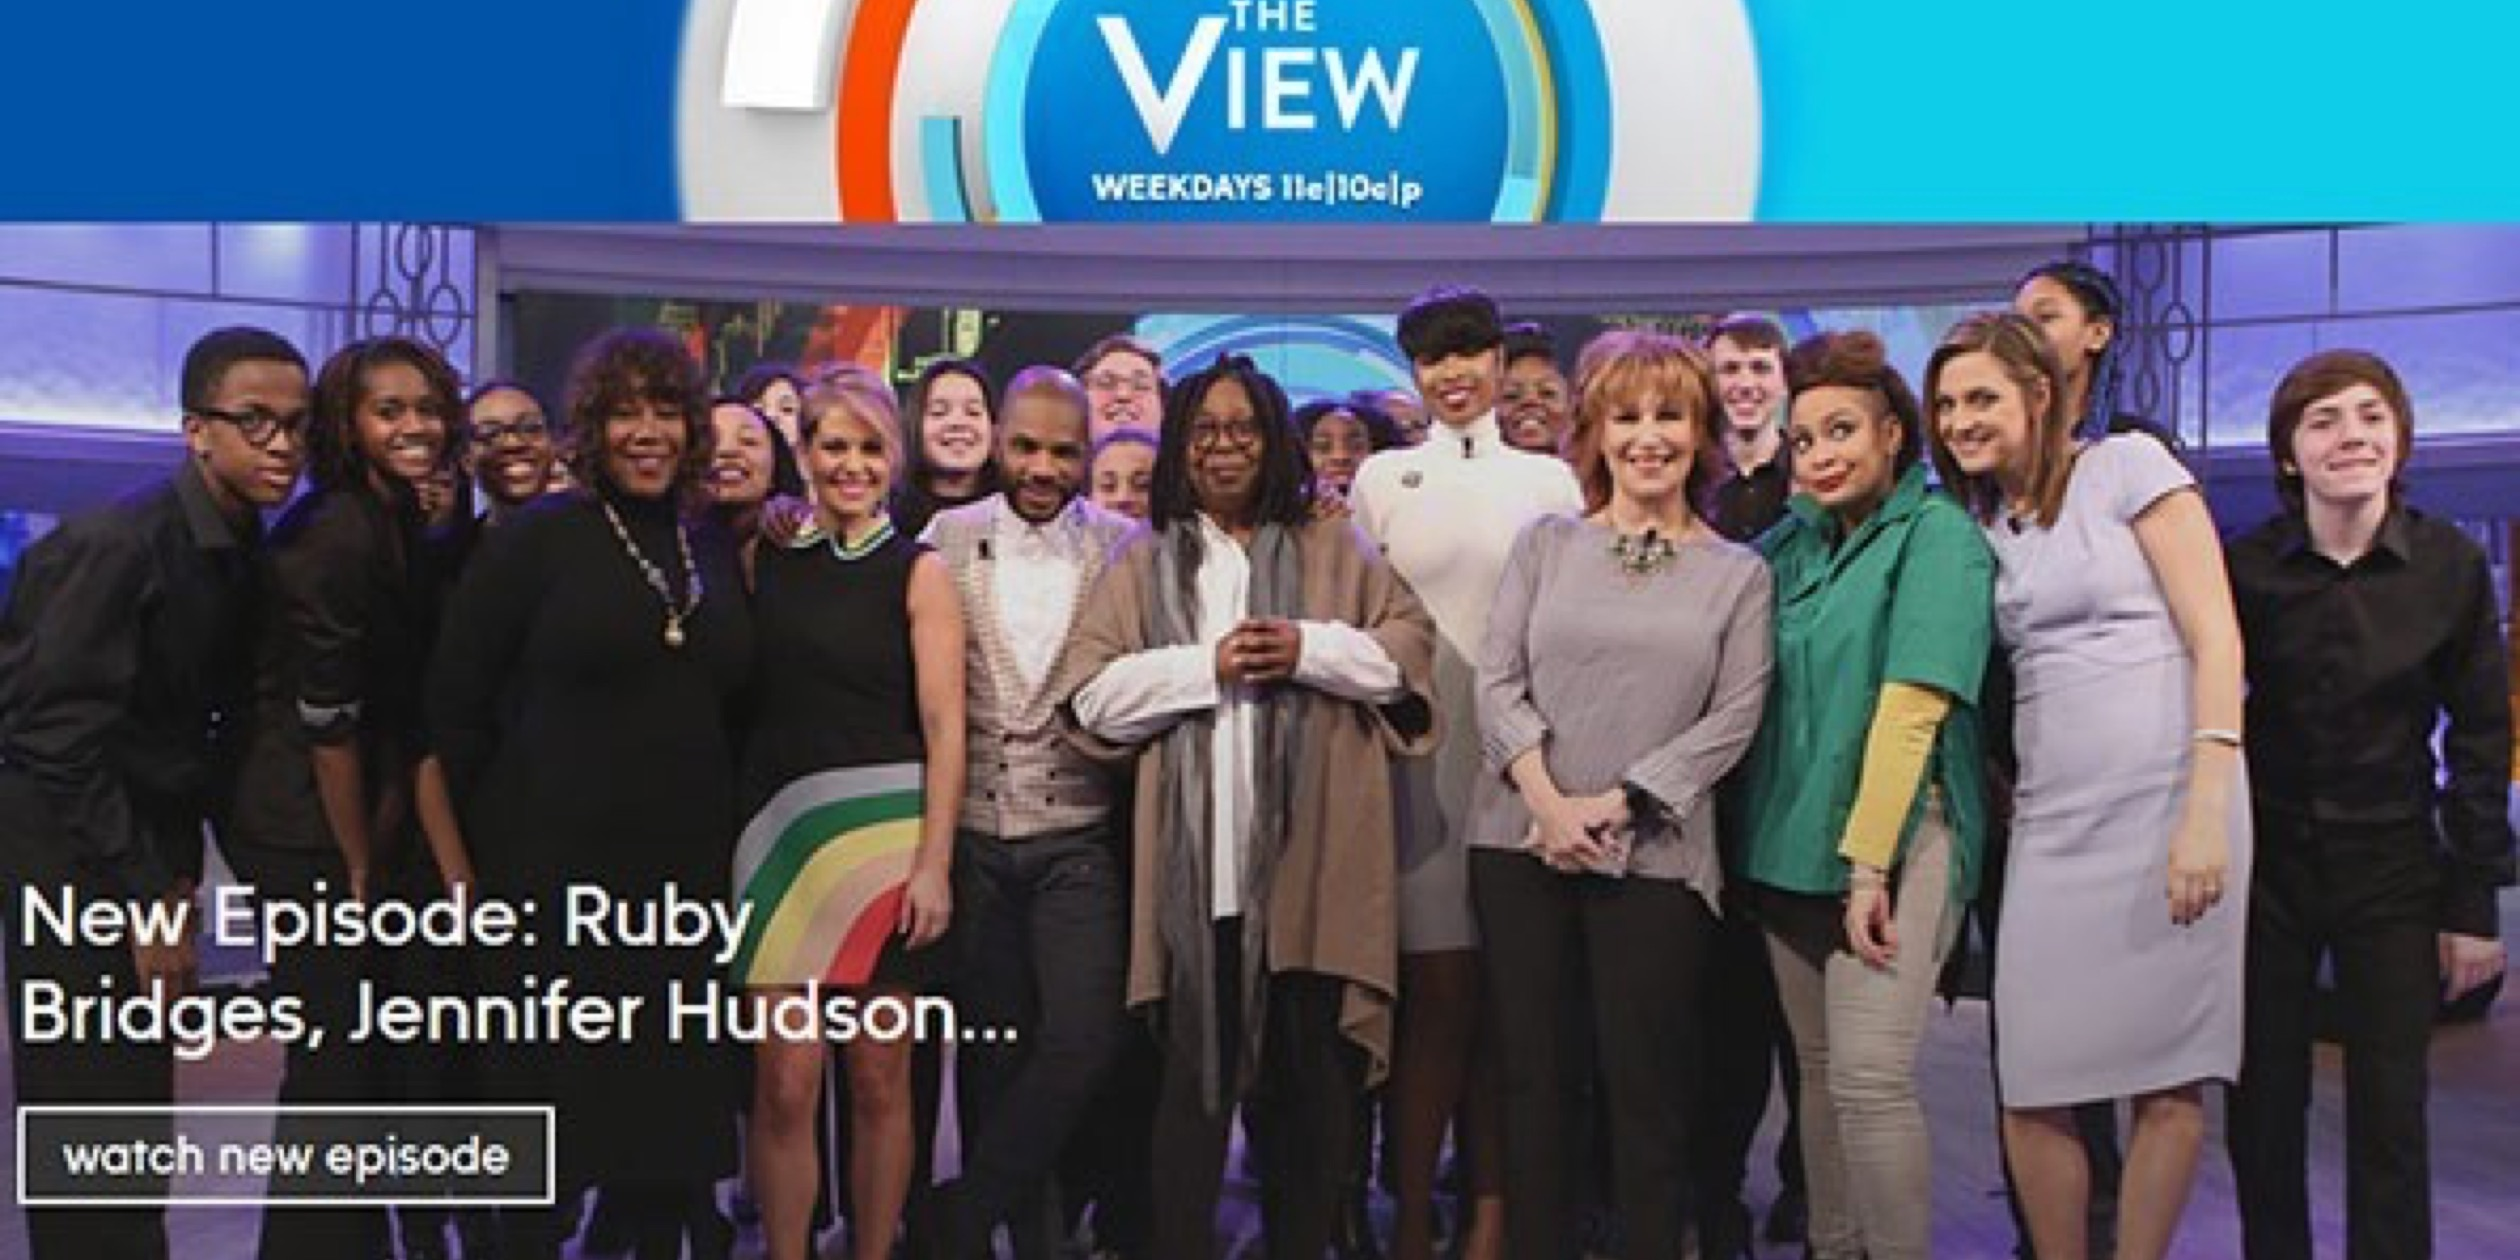 Watch Special Music School Students Perform with Kirk Franklin on ABC's The View!